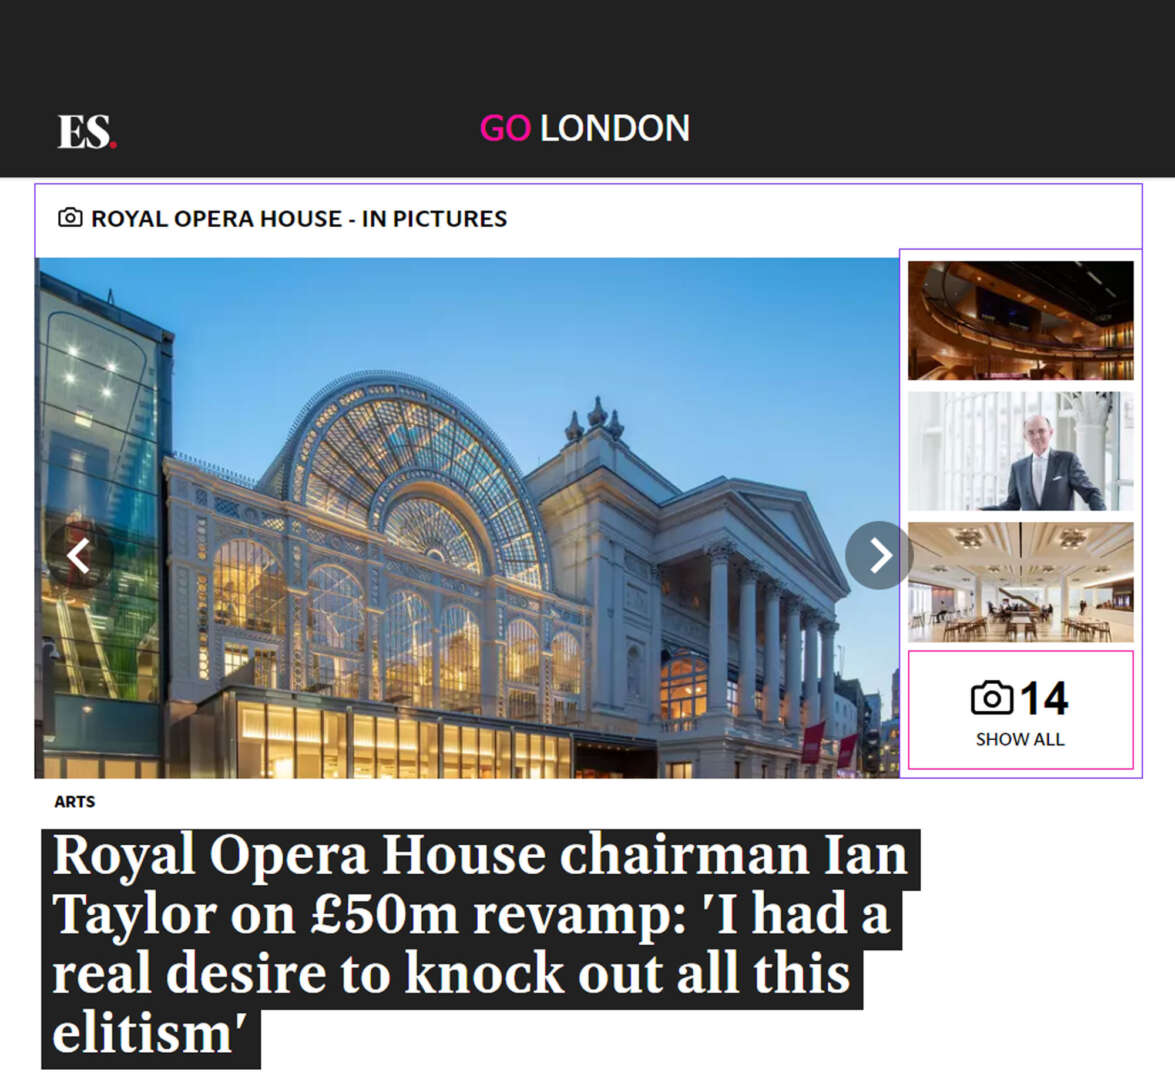 The Royal Opera House featured in The Evening Standard